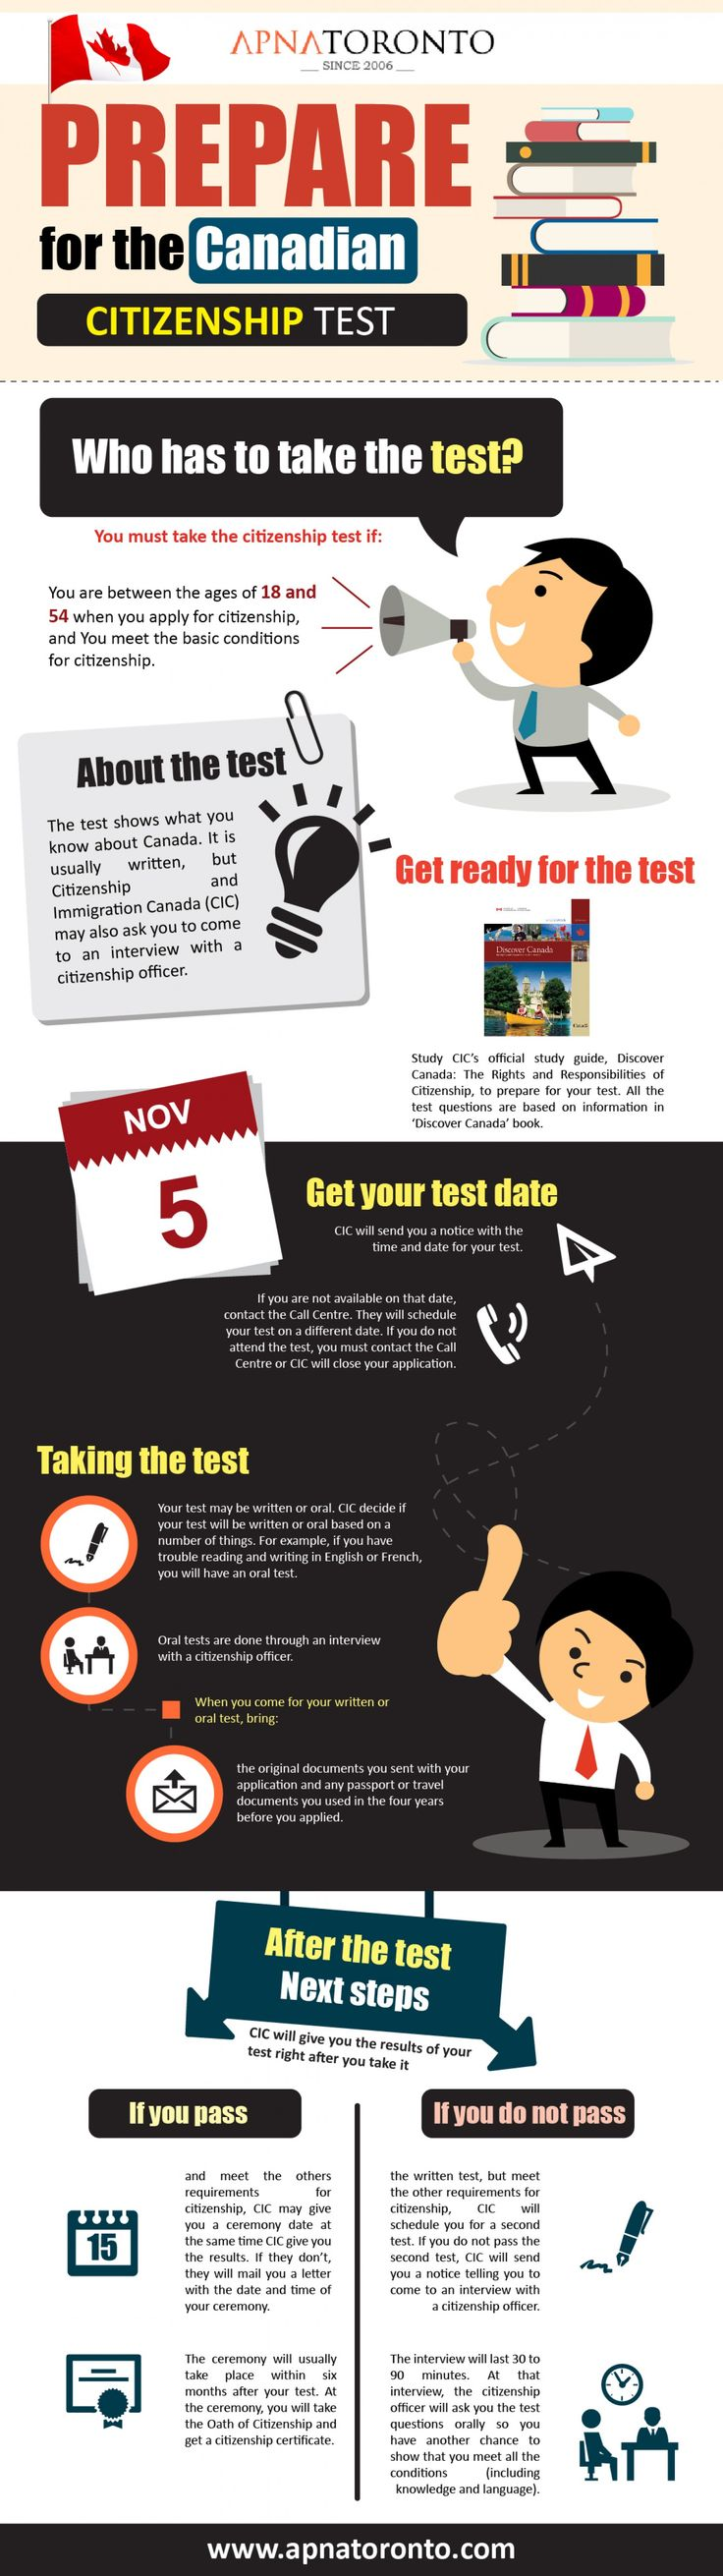 Prepare for the Canadian Citizenship Test Infographic